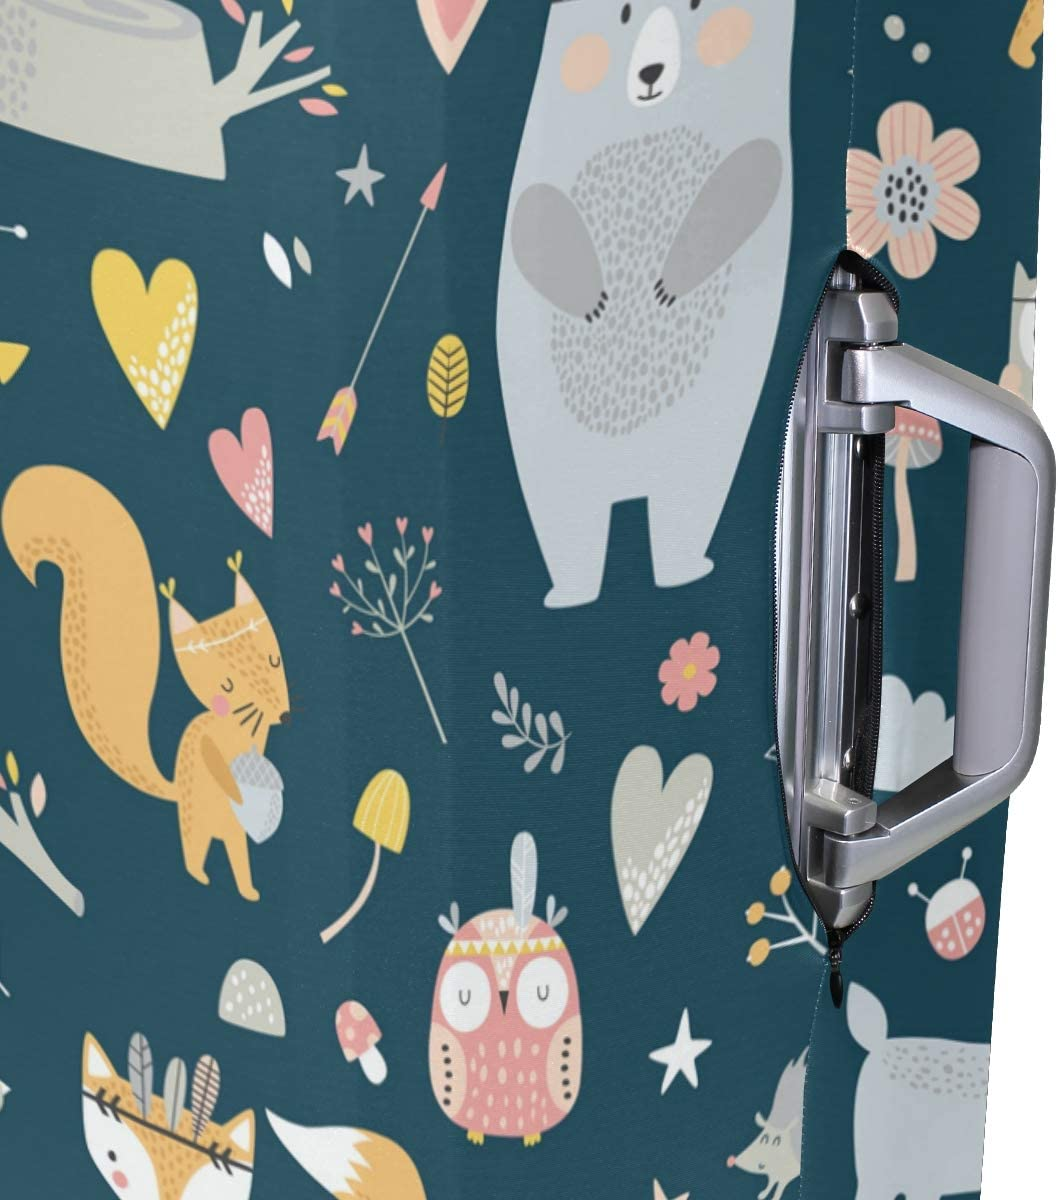 FOLPPLY Forest Cartoon Fox Owl Bear Feather Floral Luggage Cover Baggage Suitcase Travel Protector Fit for 18-32 Inch